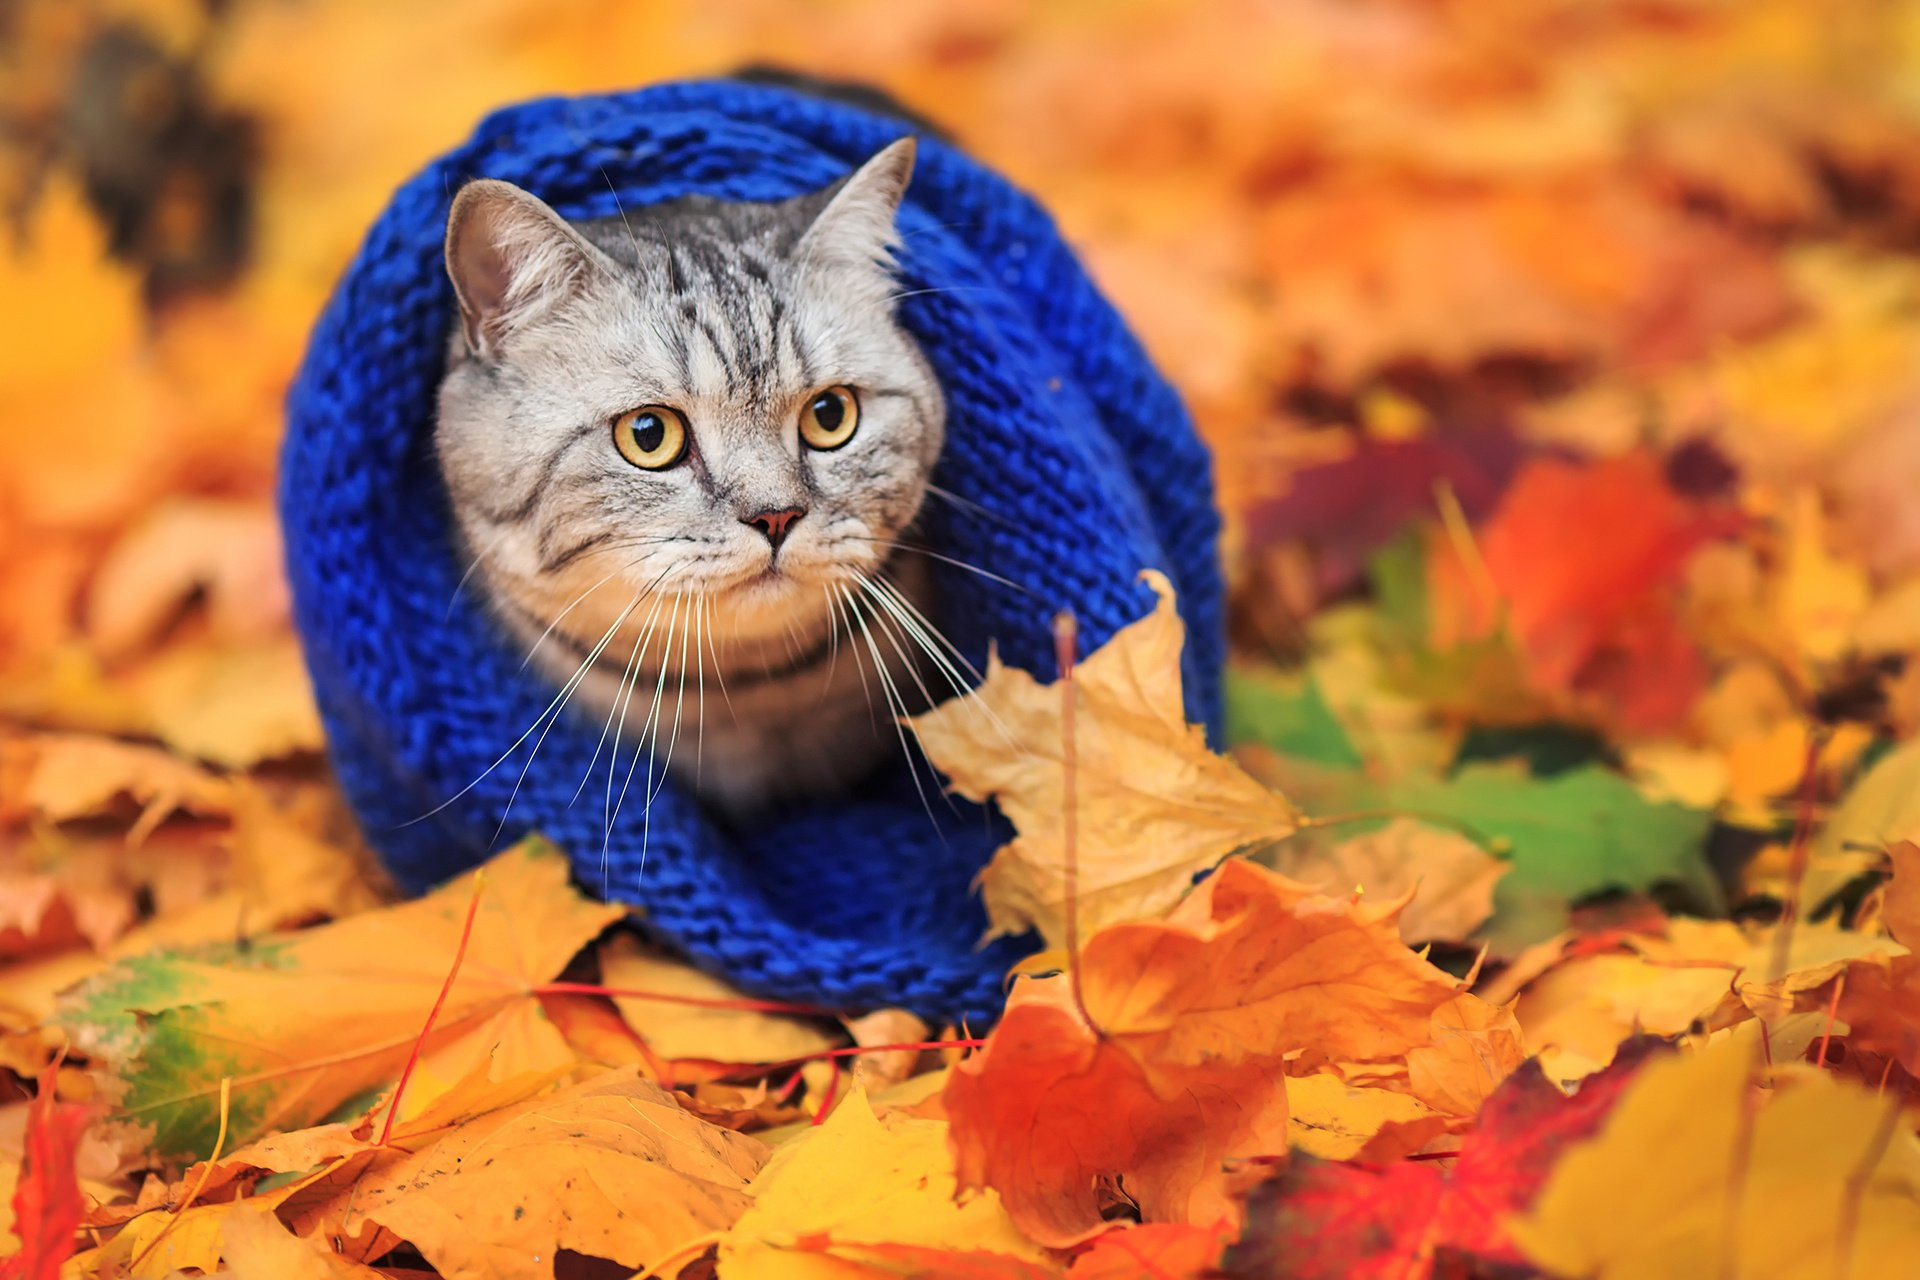 Cat scarf autumn leaves wallpaper   1920x1280   485753   WallpaperUP